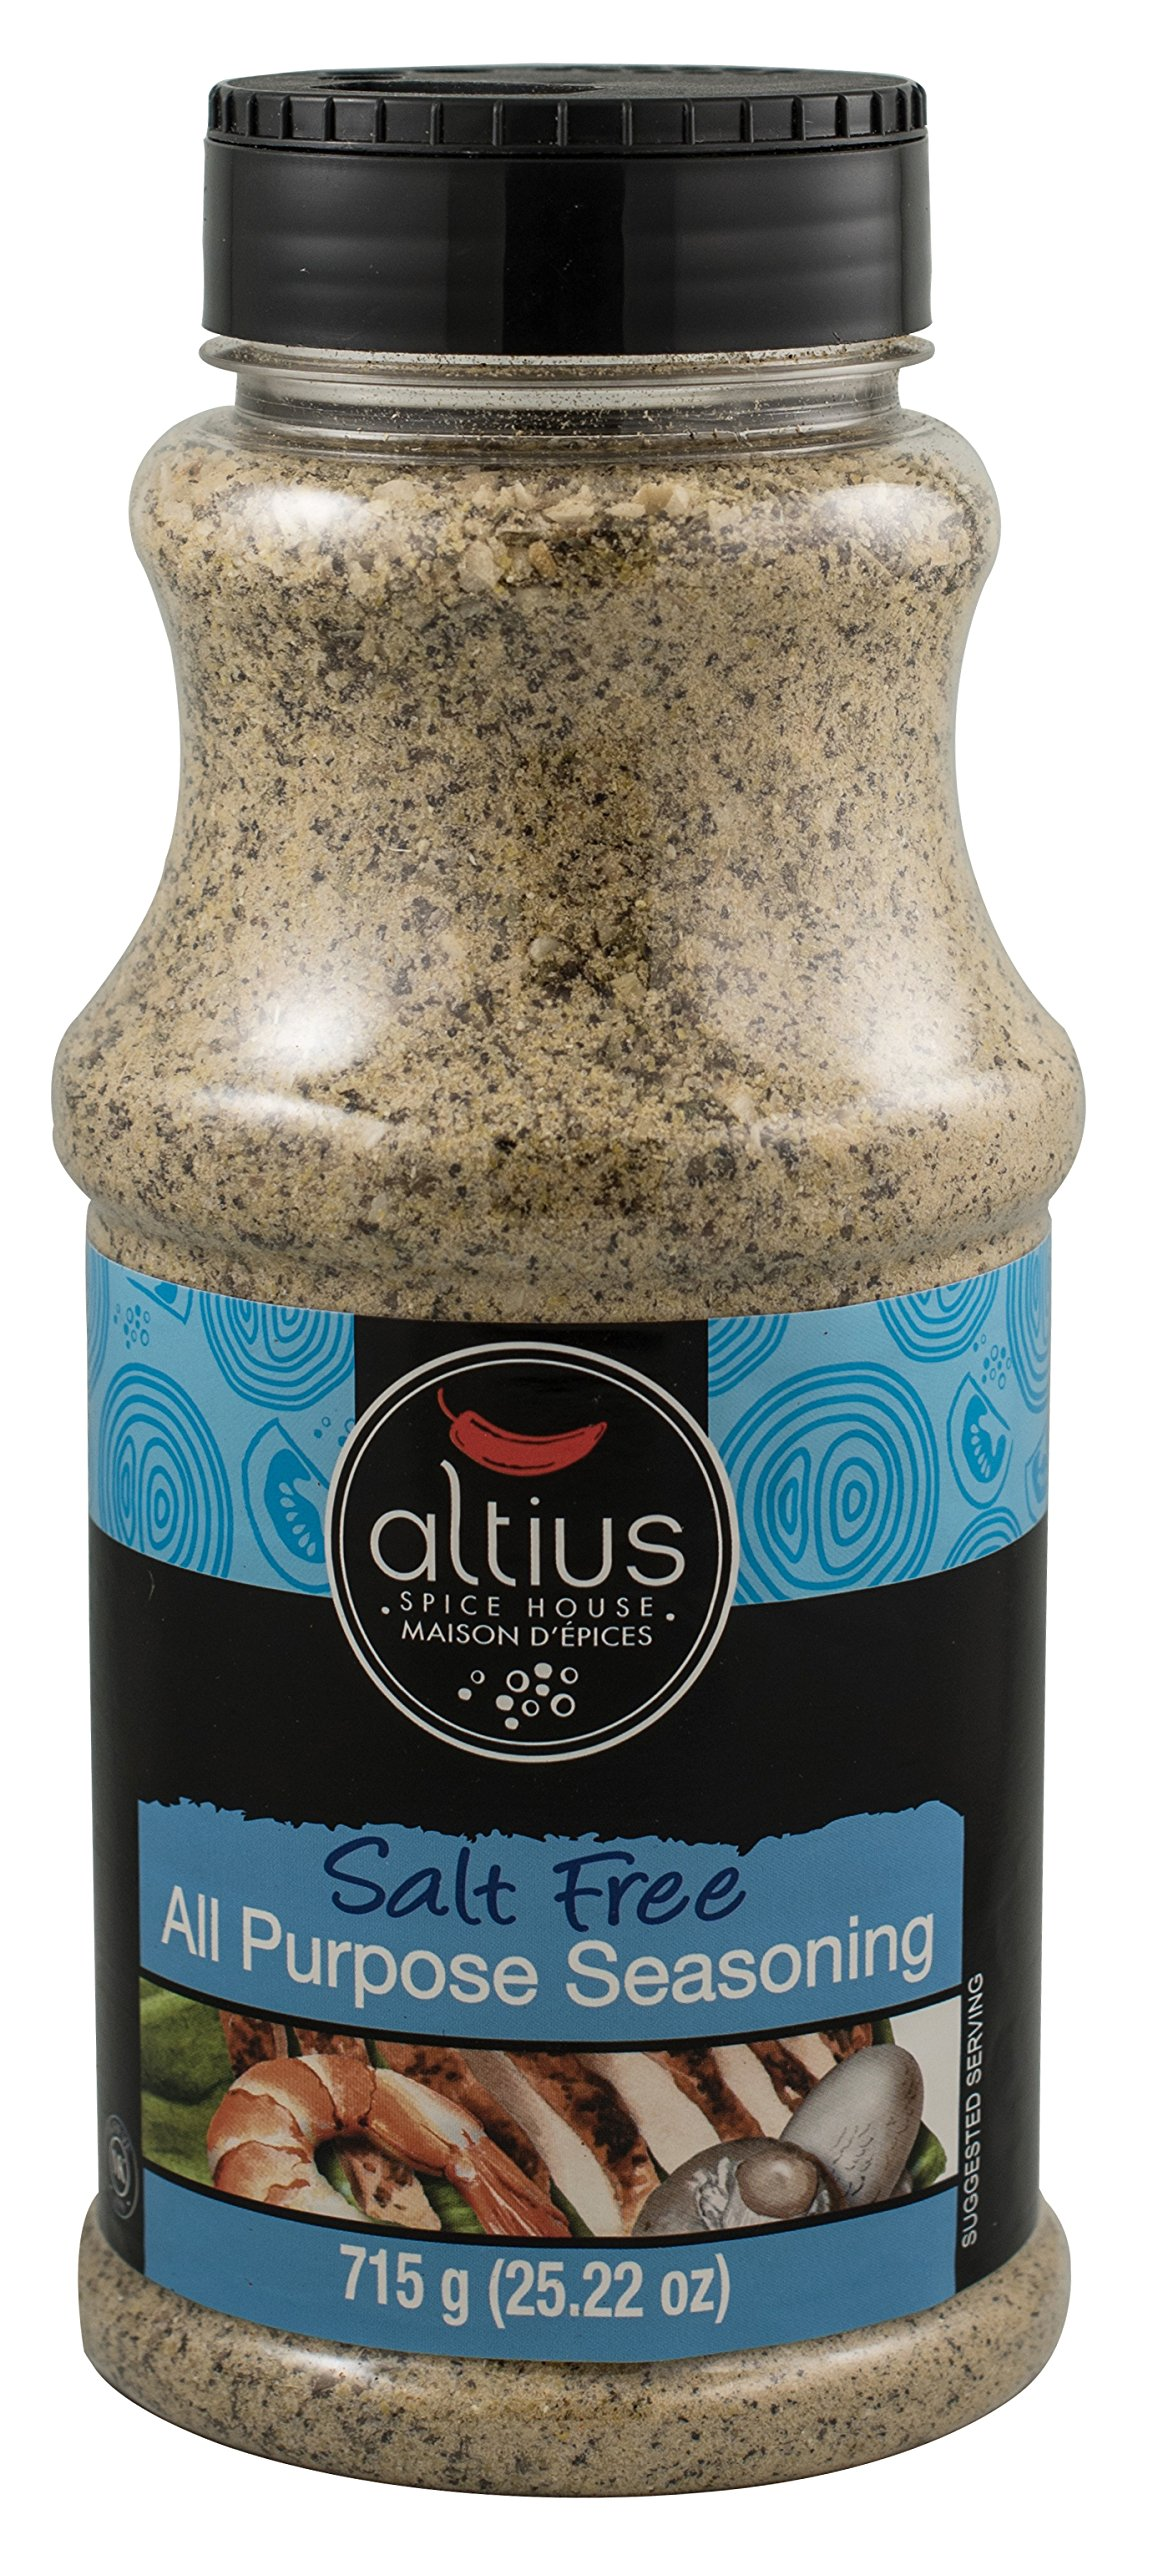 Altius Salt Free All Purpose Seasoning, Food Service Size Bottles for Vegetables, Salads, Meat, Fish and Poultry, 25.22 oz